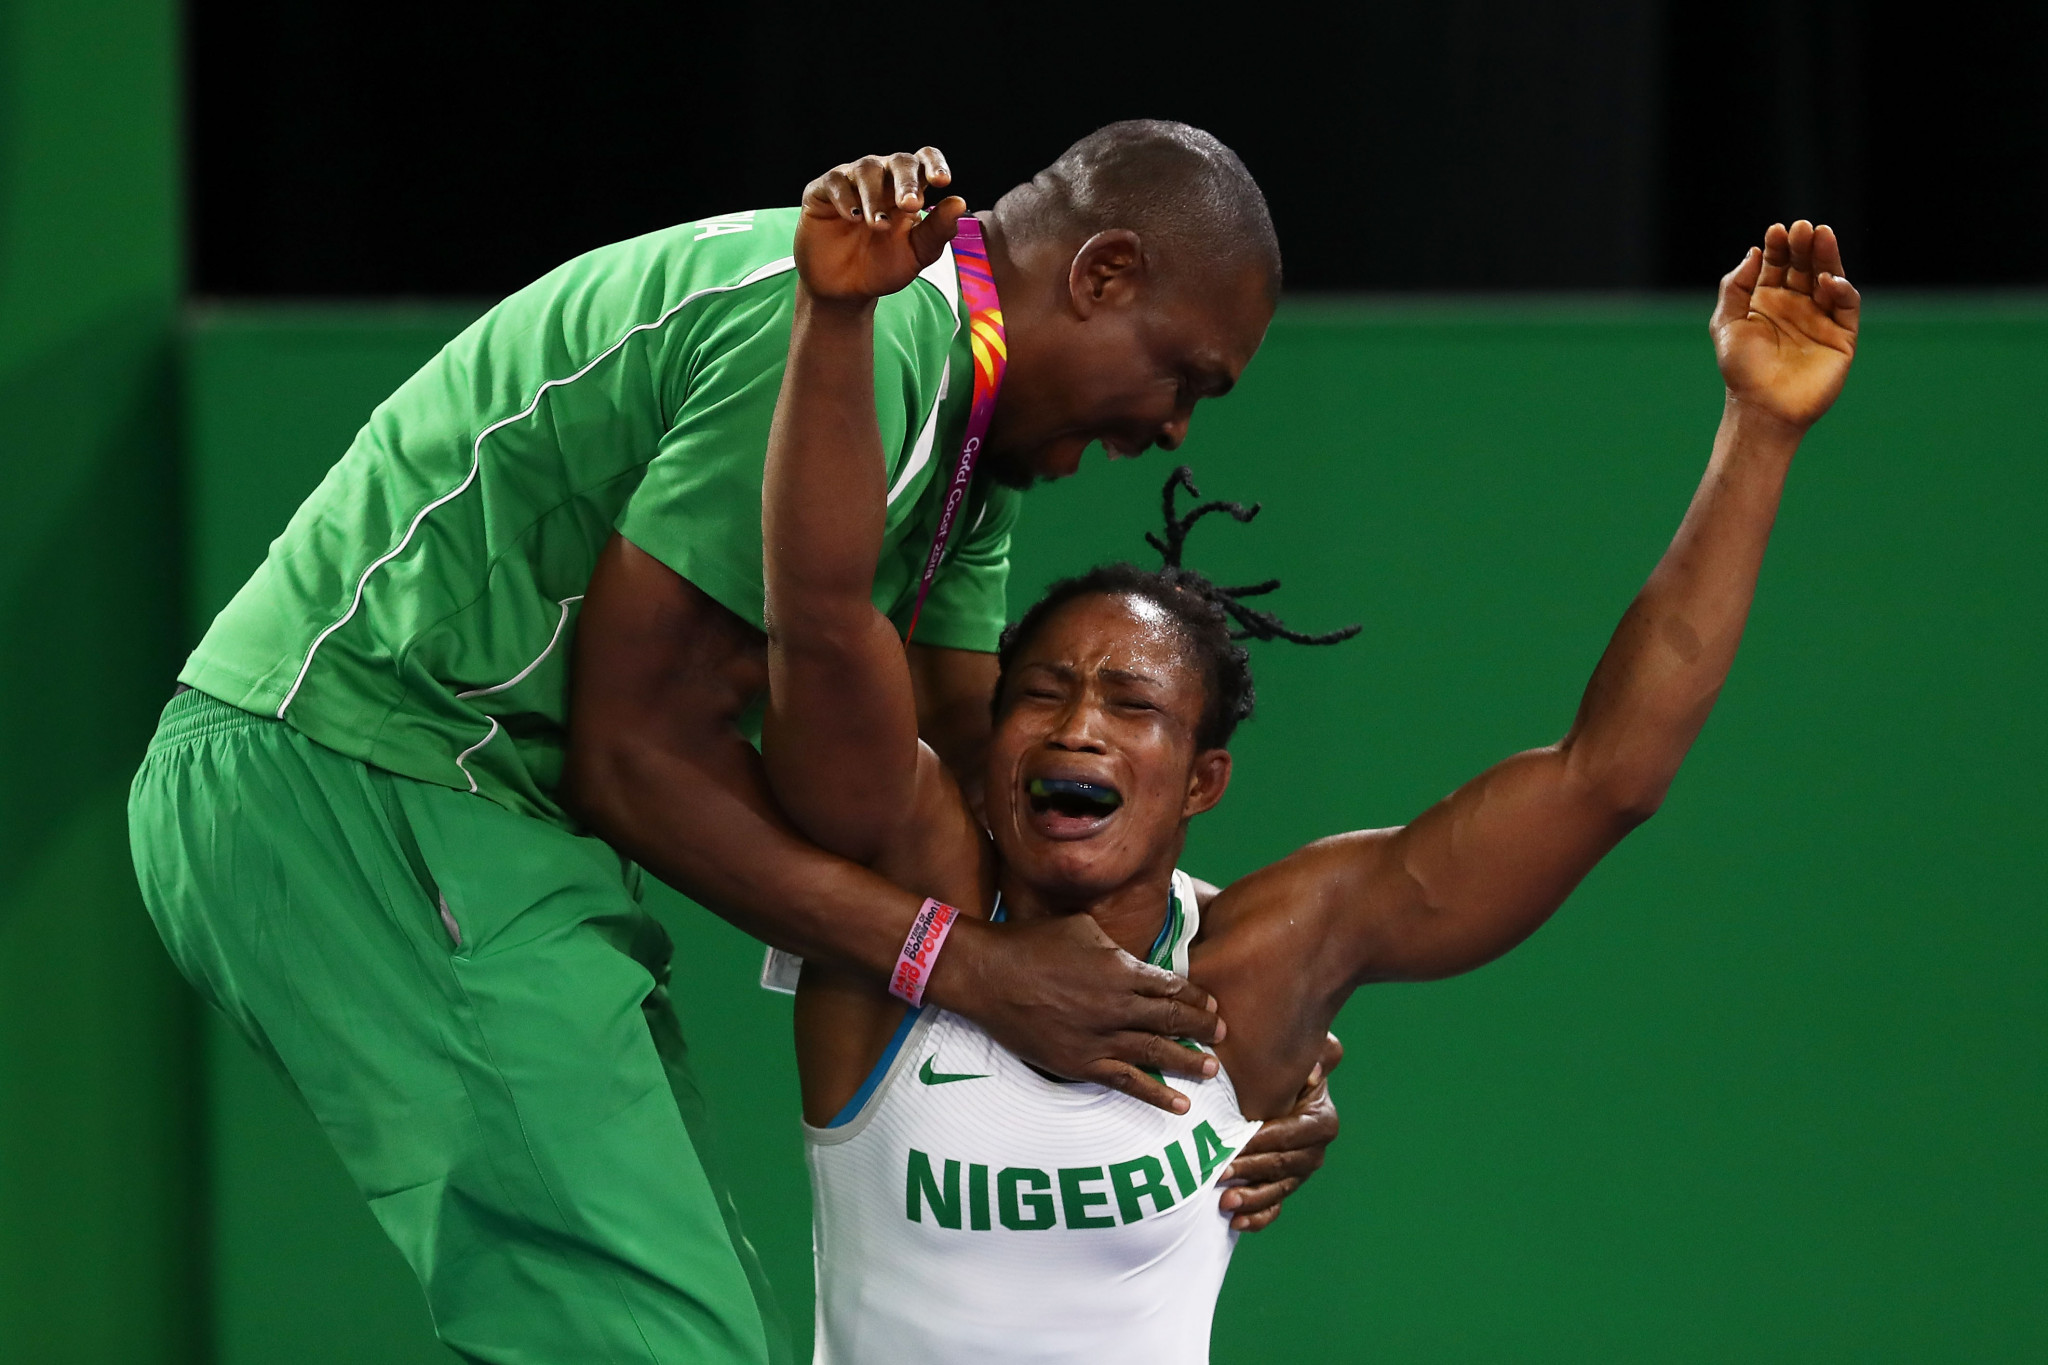 Nigeria dominated today's women's freestyle wrestling action with Blessing Oborududu winning the 68 kilograms title ©Getty Images